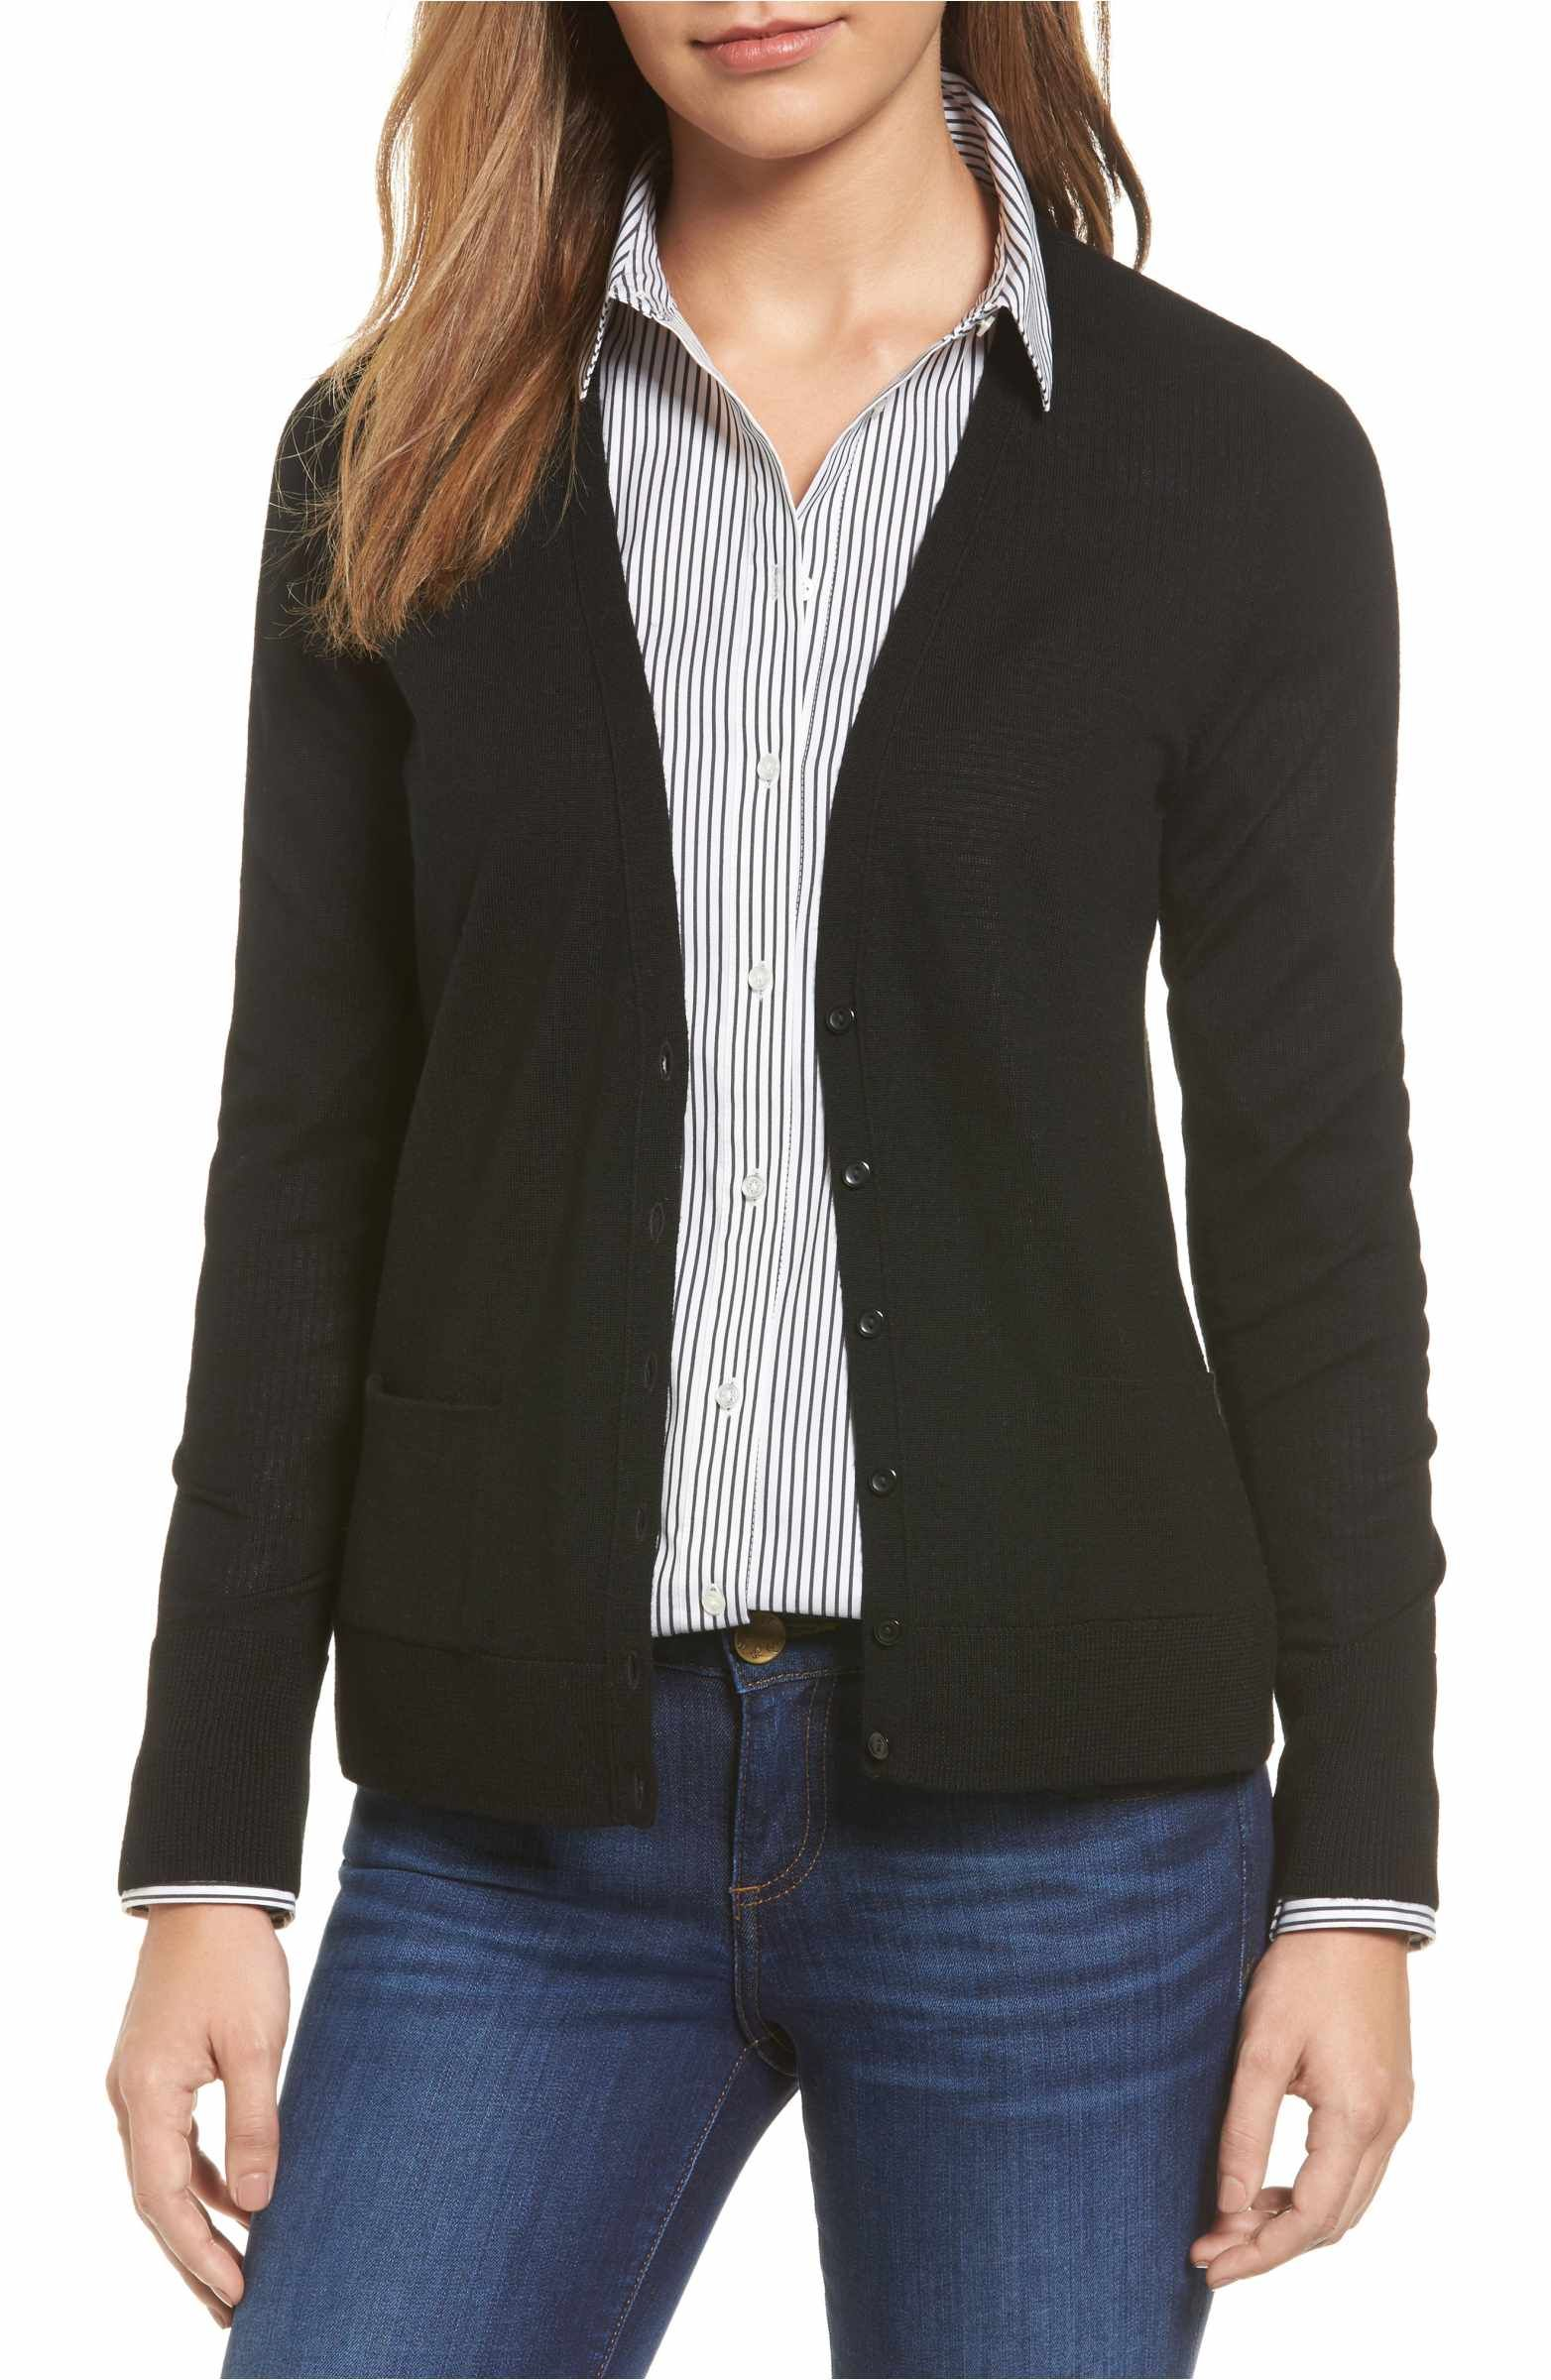 963c282aeed7 Main Image - Halogen® V-Neck Merino Wool Cardigan (Regular & Petite ...